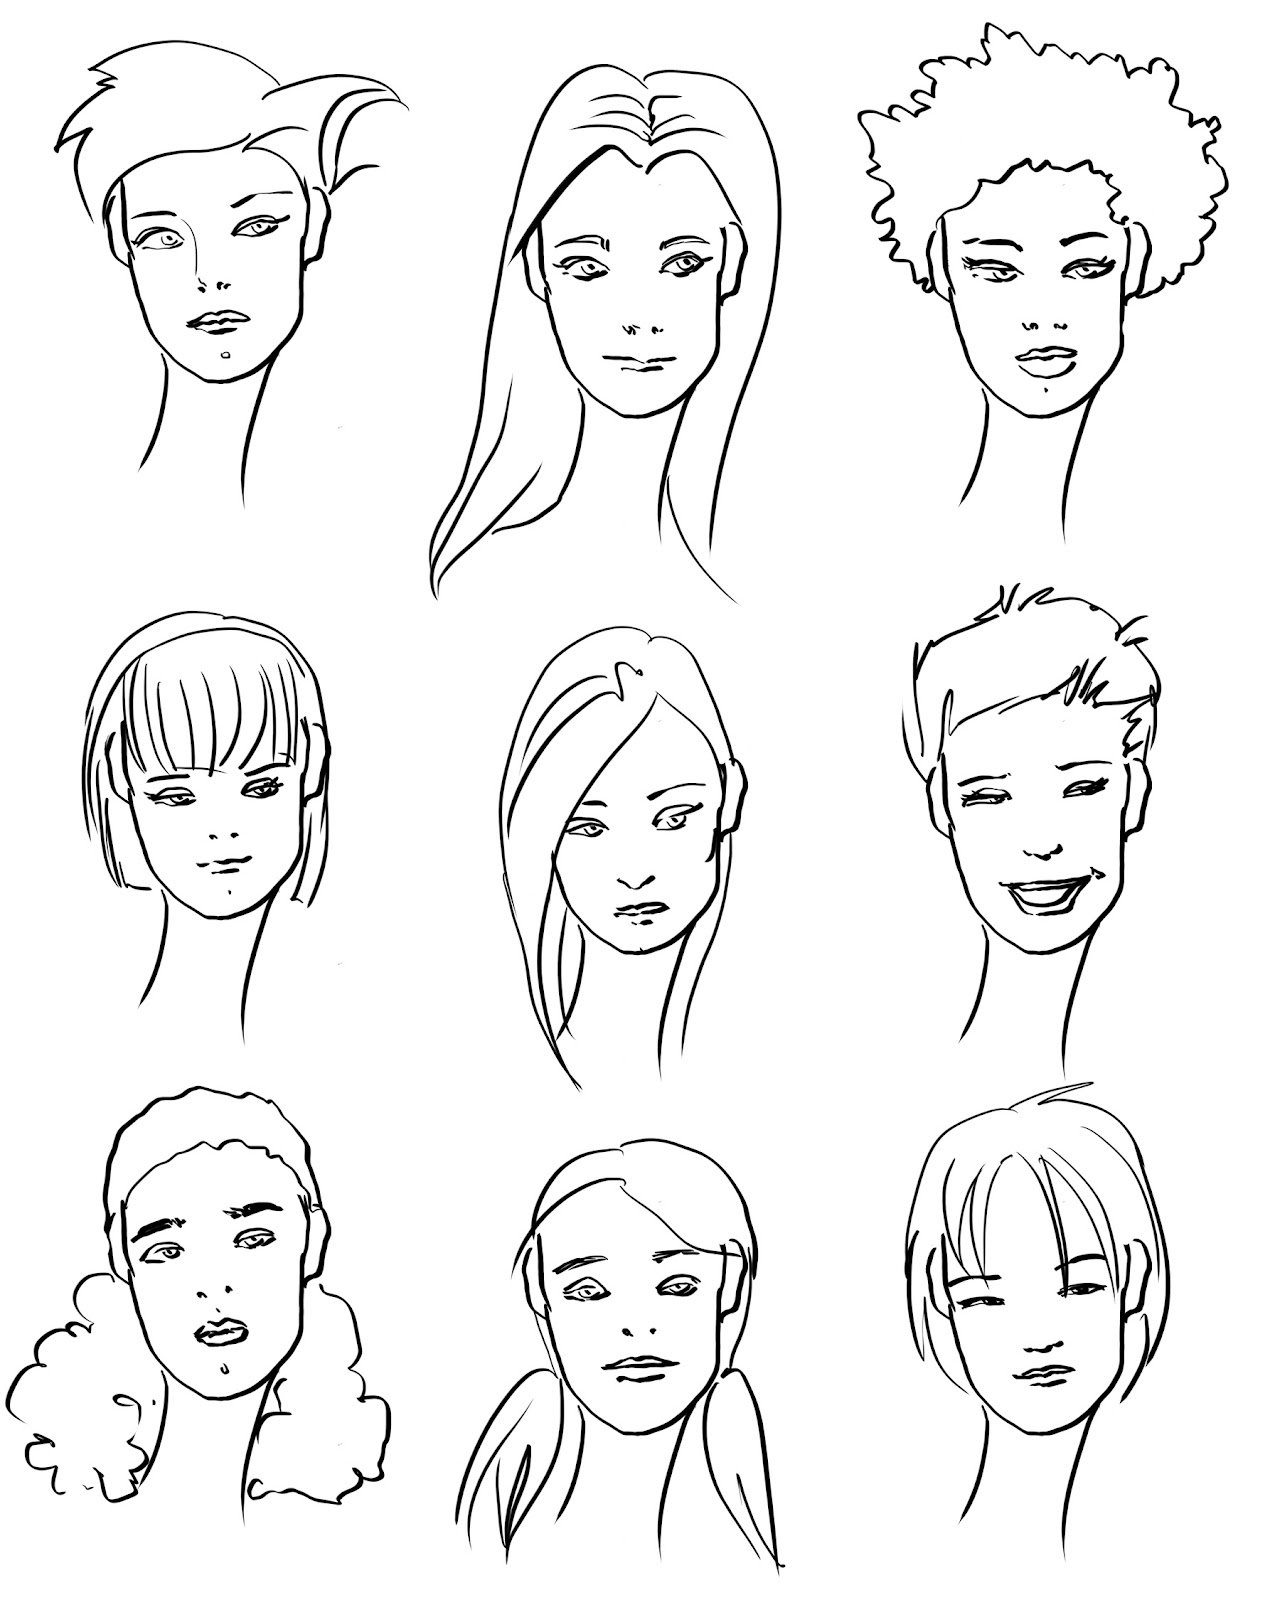 Worksheets Plants Steps How To Draw Self Portrait Fashion Templates With  Faces And Hair How To